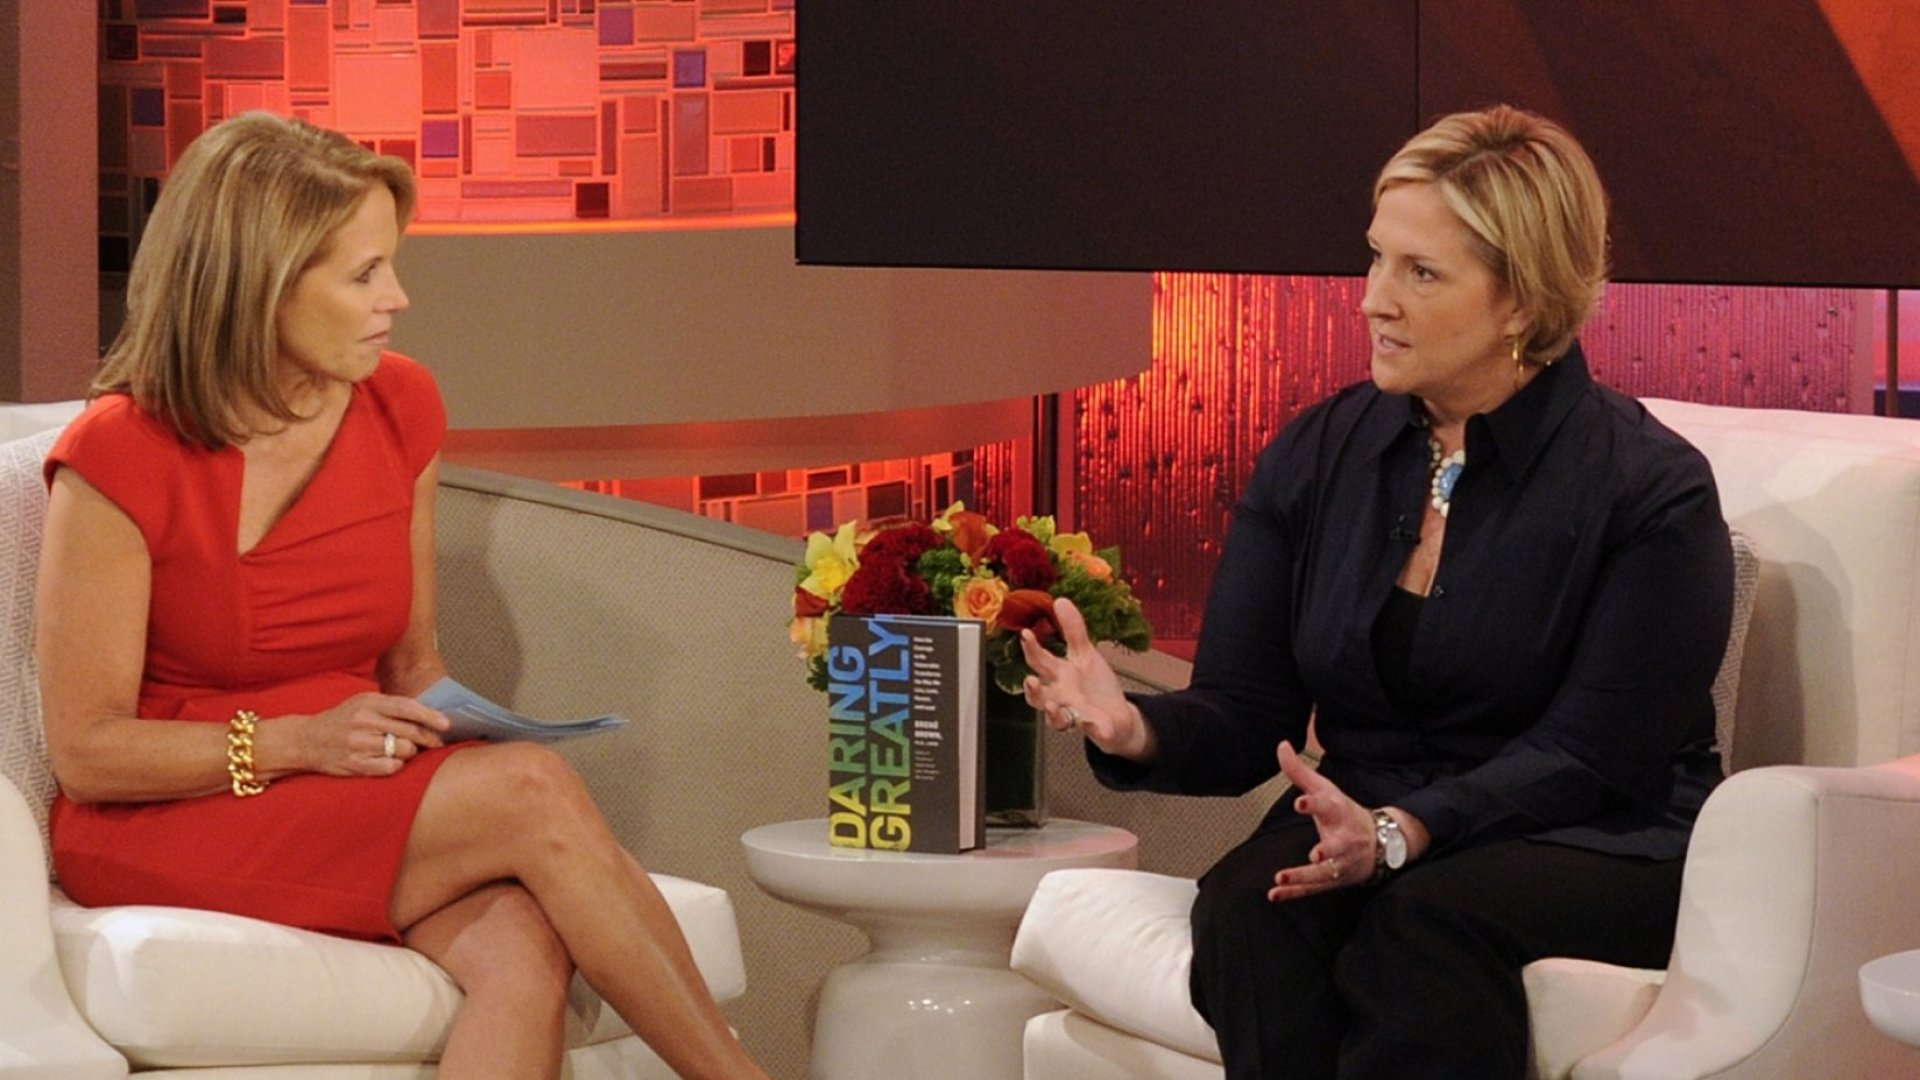 Brene Brown, vulnerability researcher at the University of Houston, is a guest on <em>Katie</em>.